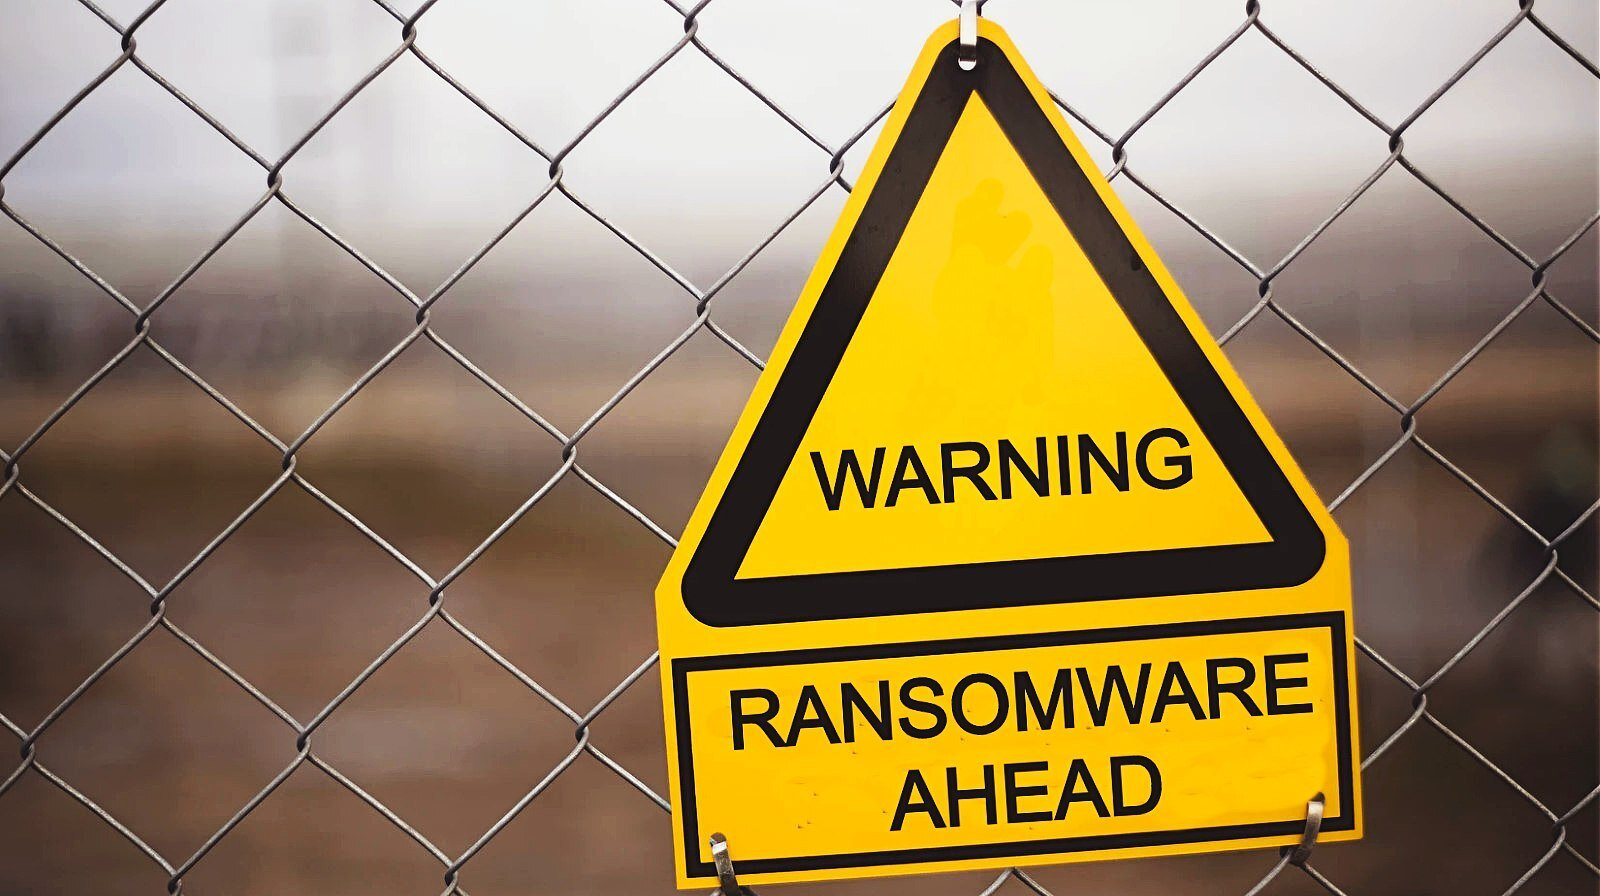 """Warning sign that says """"Ransomware Ahead"""" on it"""